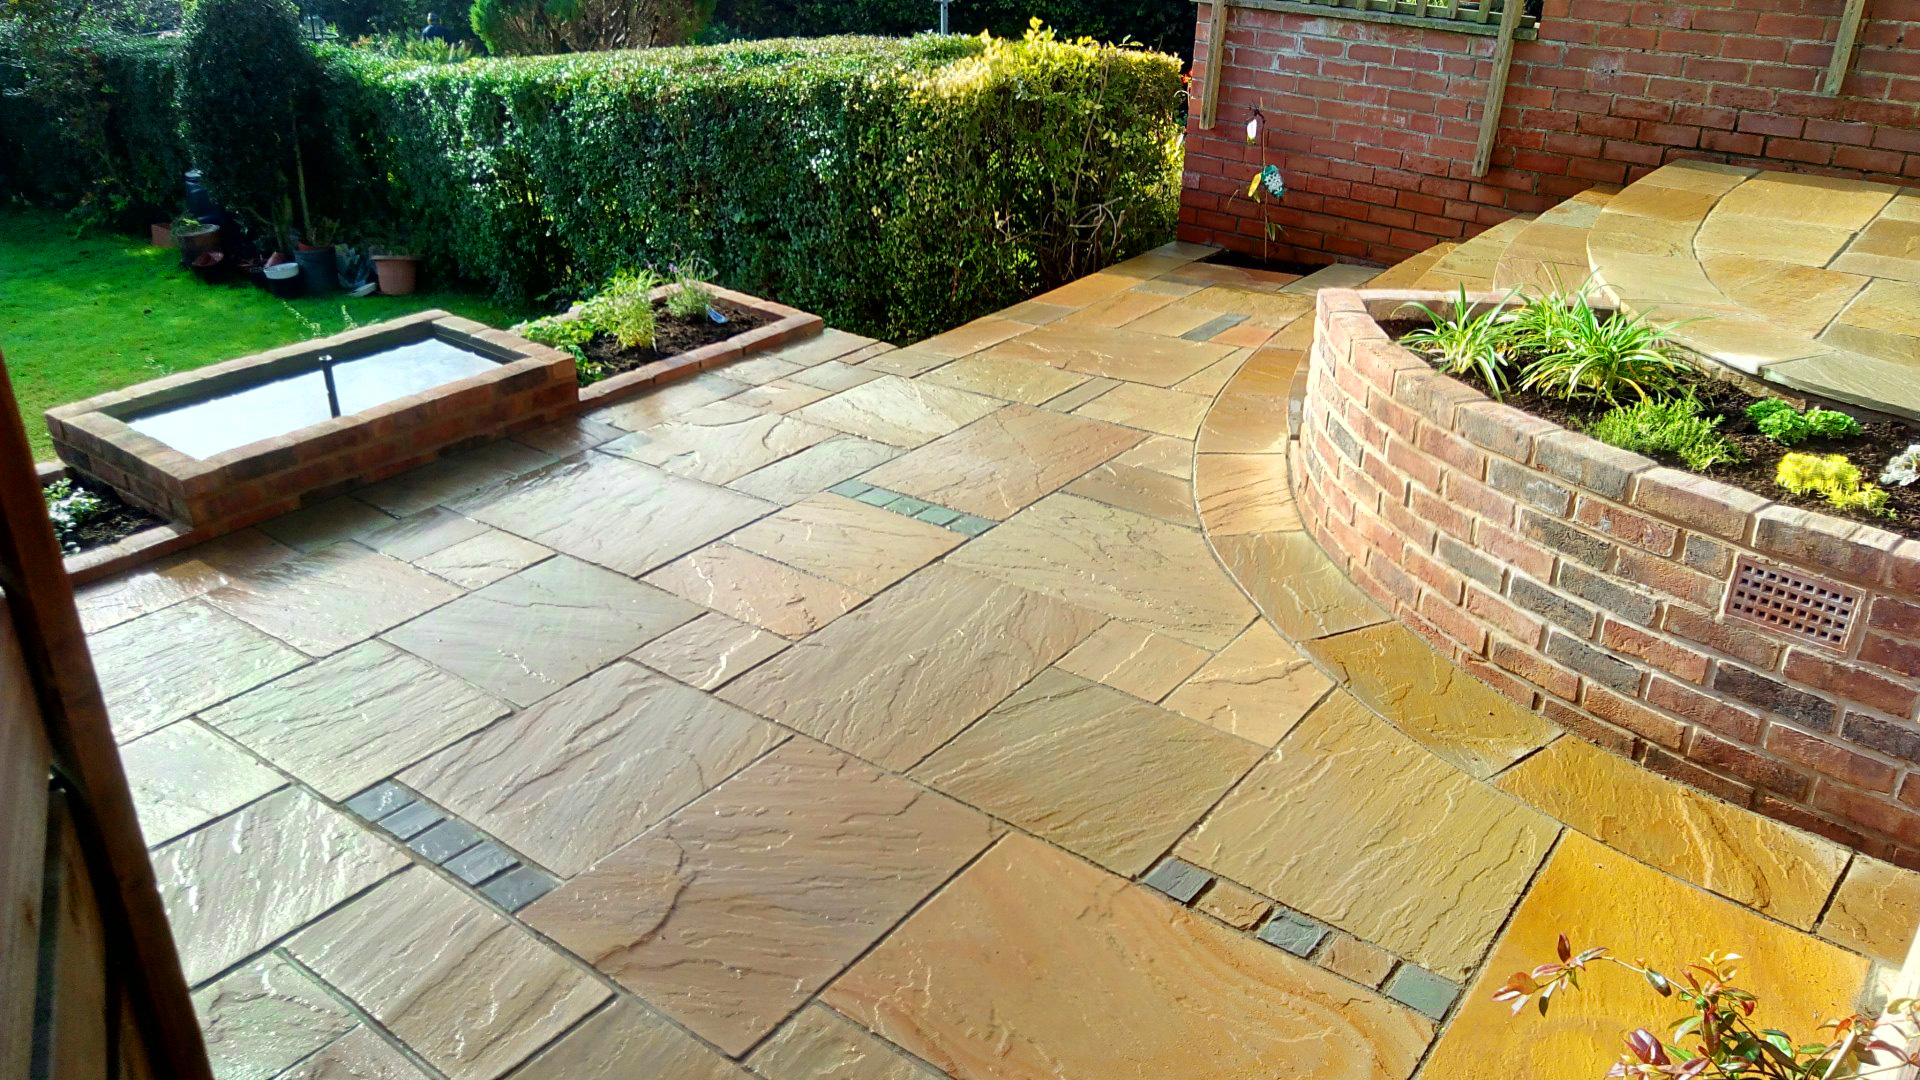 Garden Design Manchester city garden doctors: garden design and landscaping services